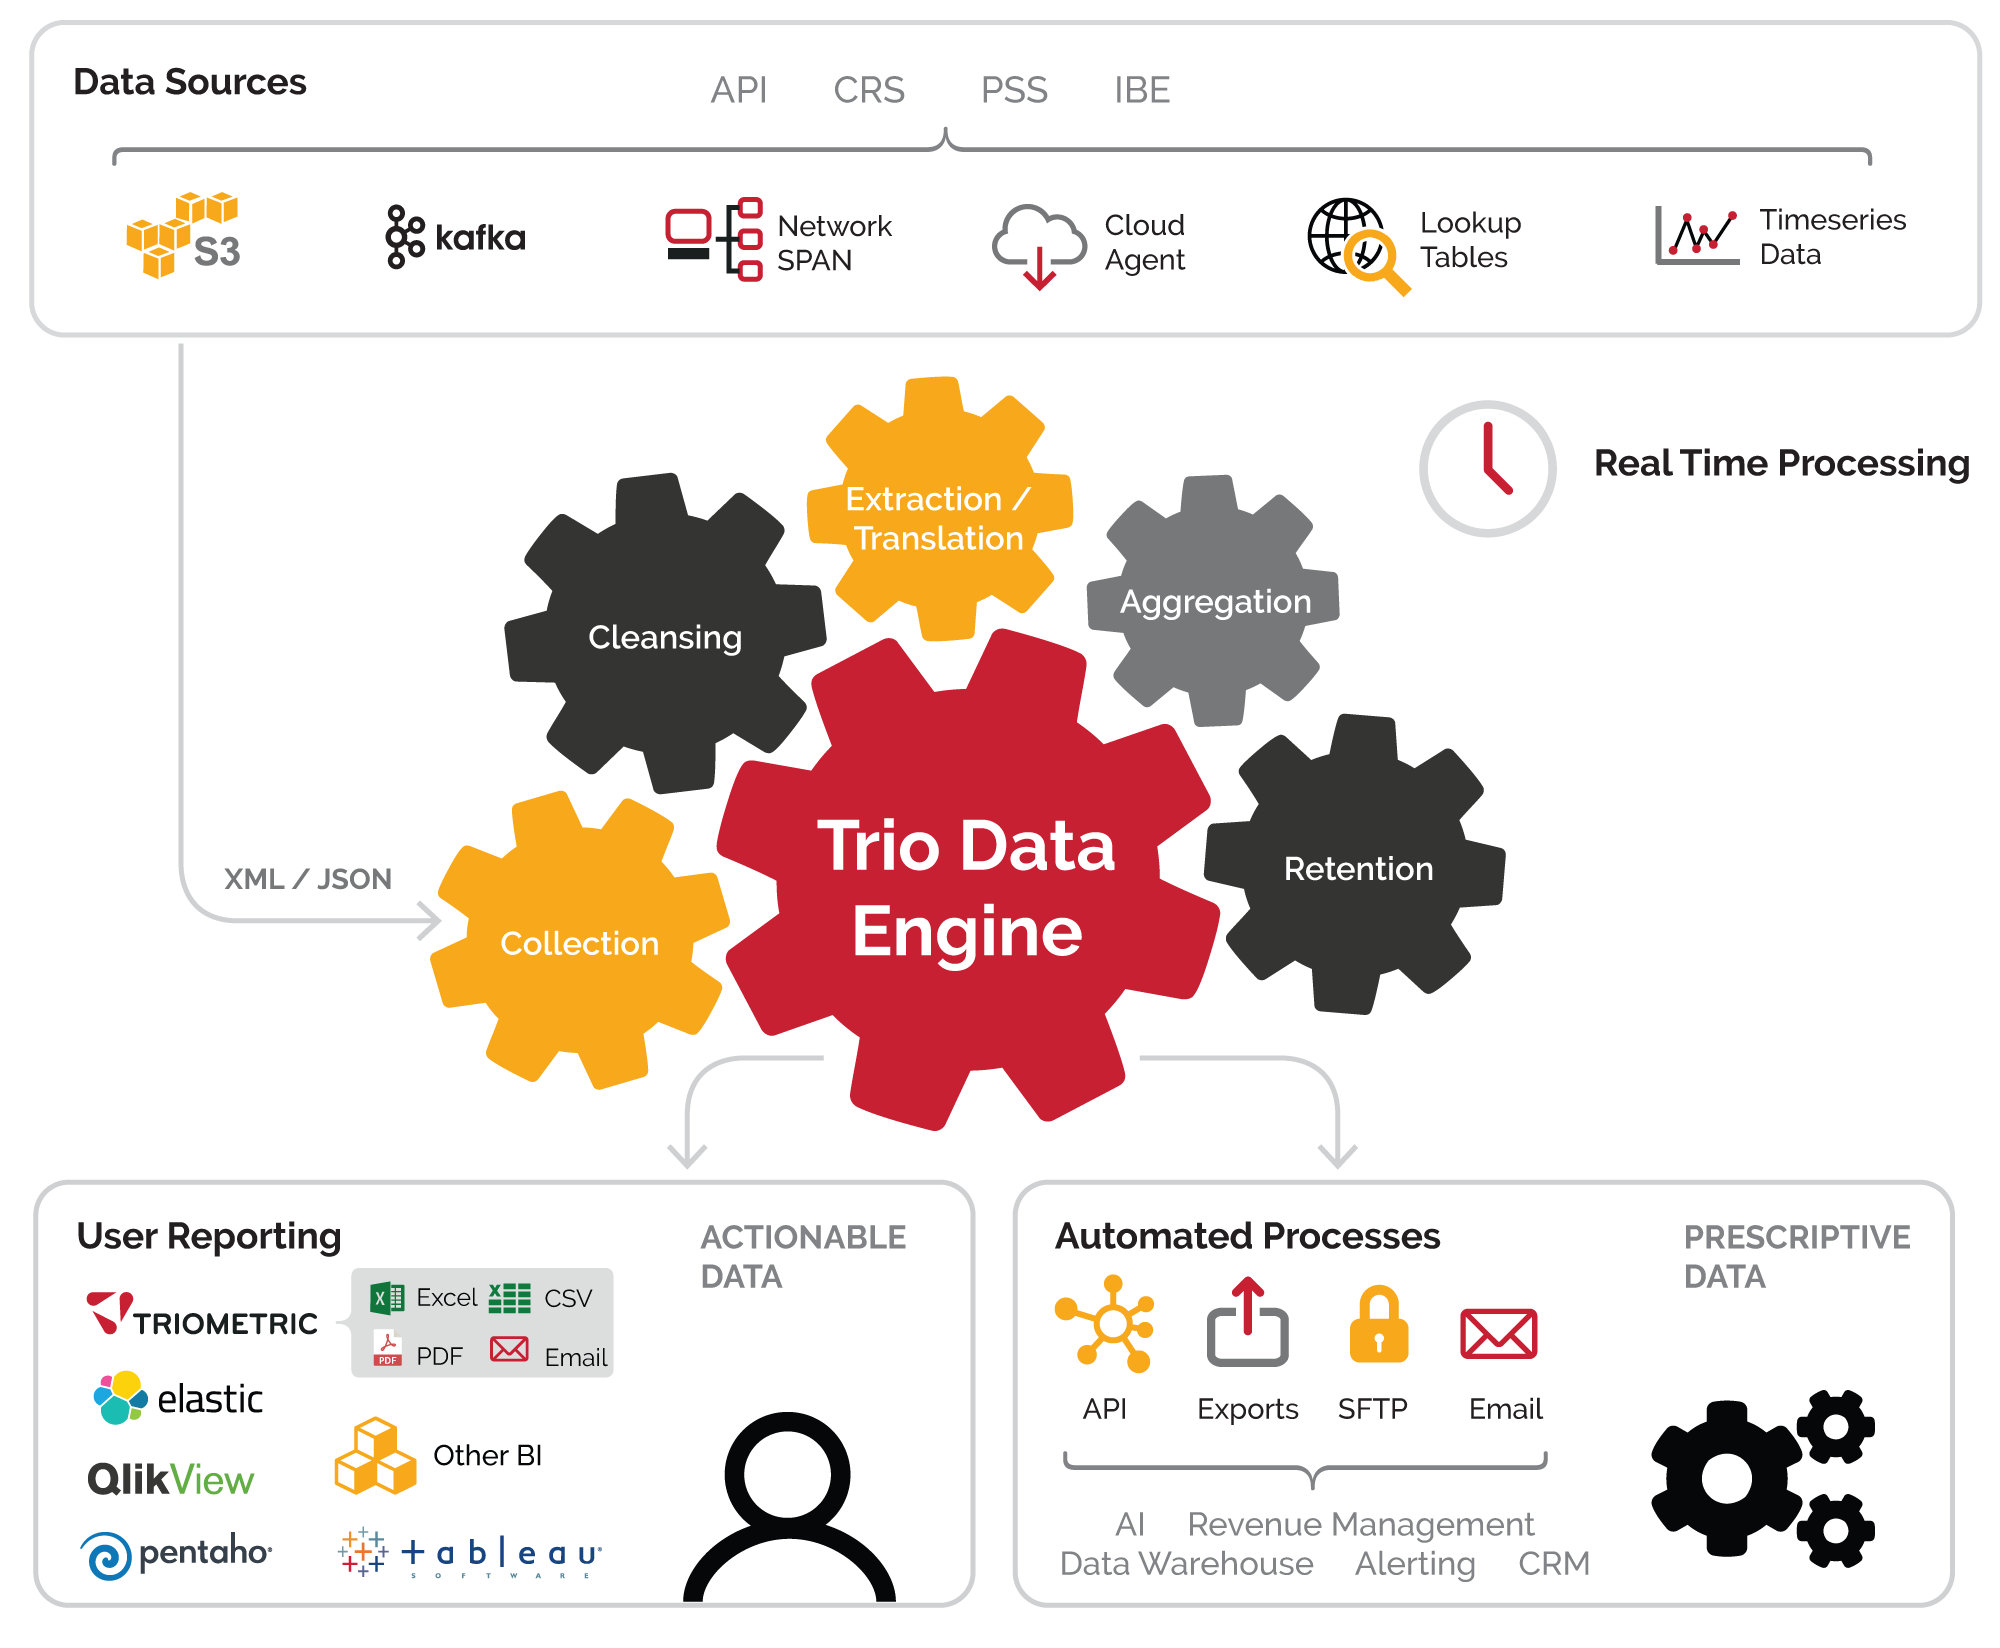 imput and output data sources for trio data engine